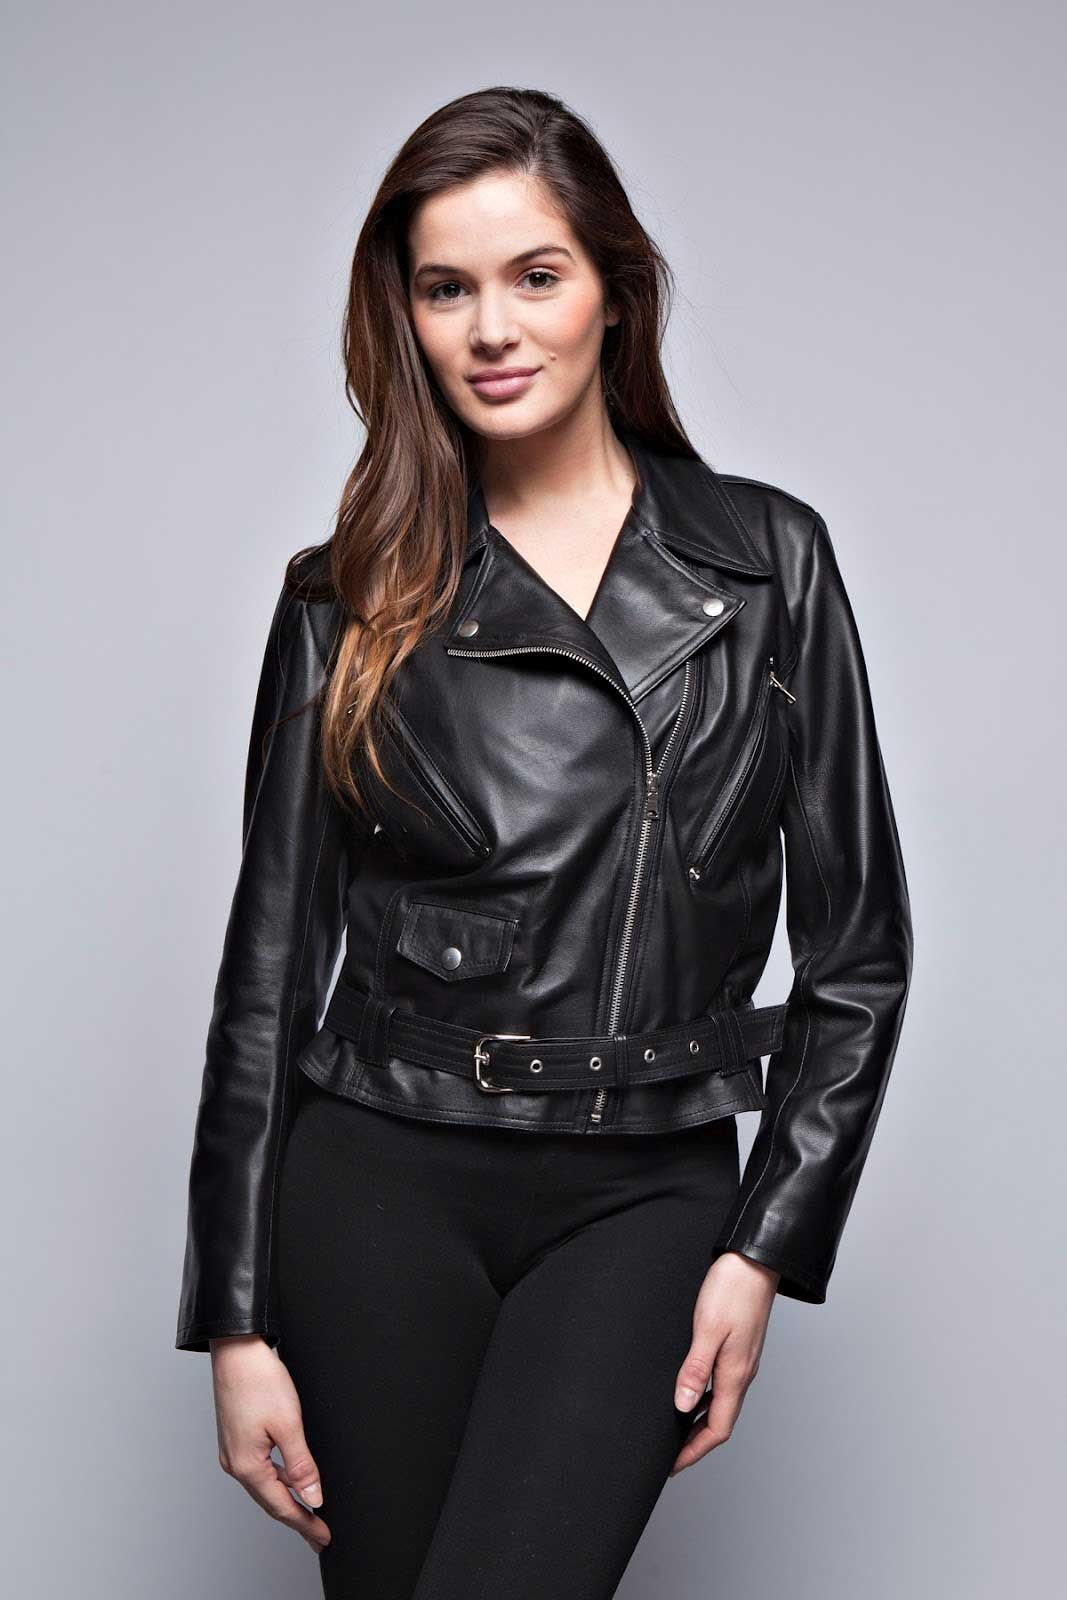 girls leather jackets Google Search Leather fashion